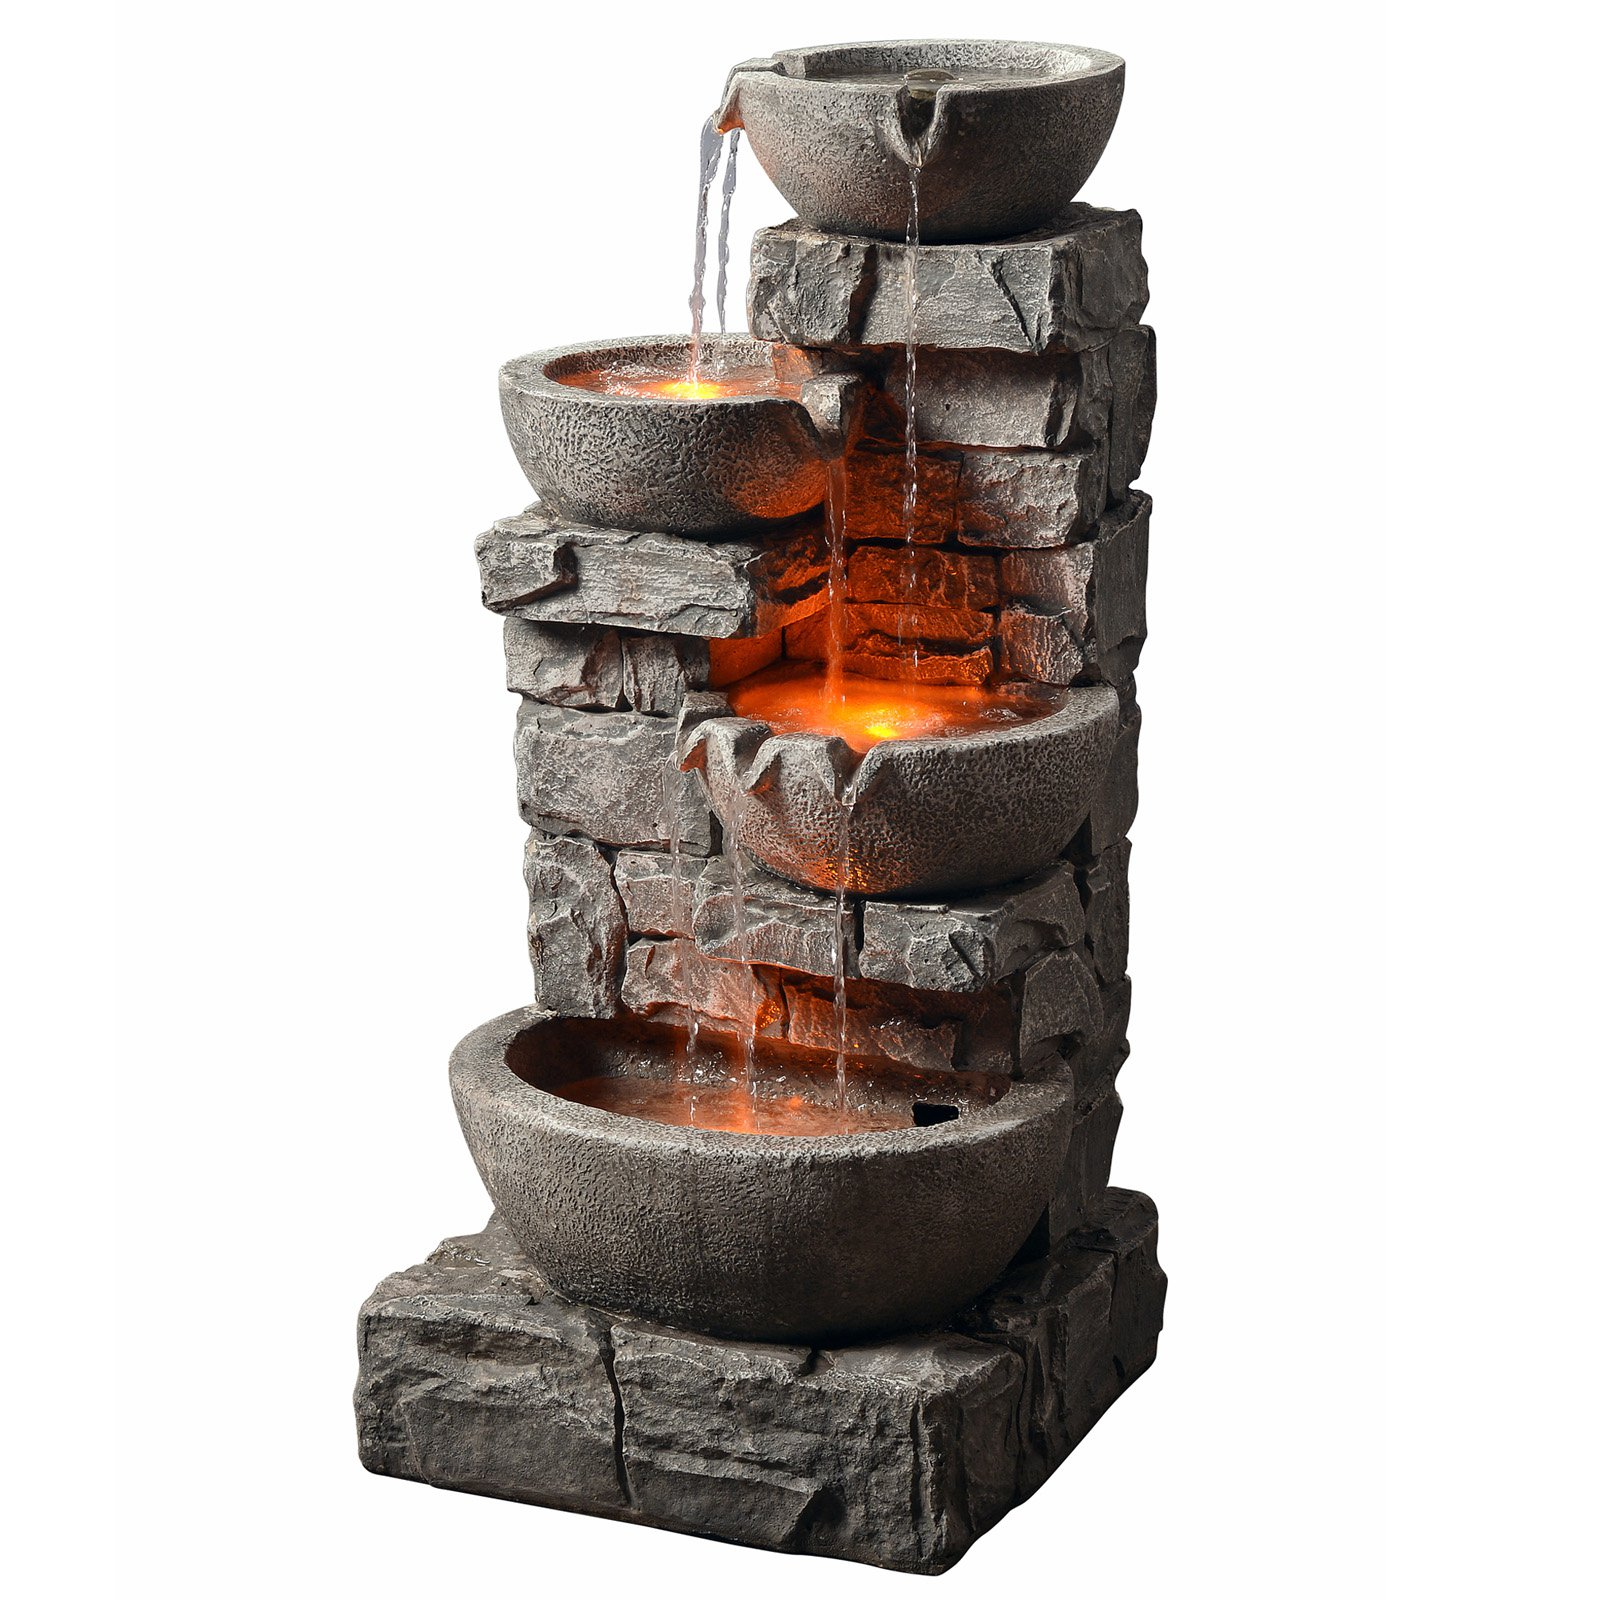 Peaktop Outdoor Stacked Stone Tiered Bowls Fountain w  LED Light by Teamson Design Corp.